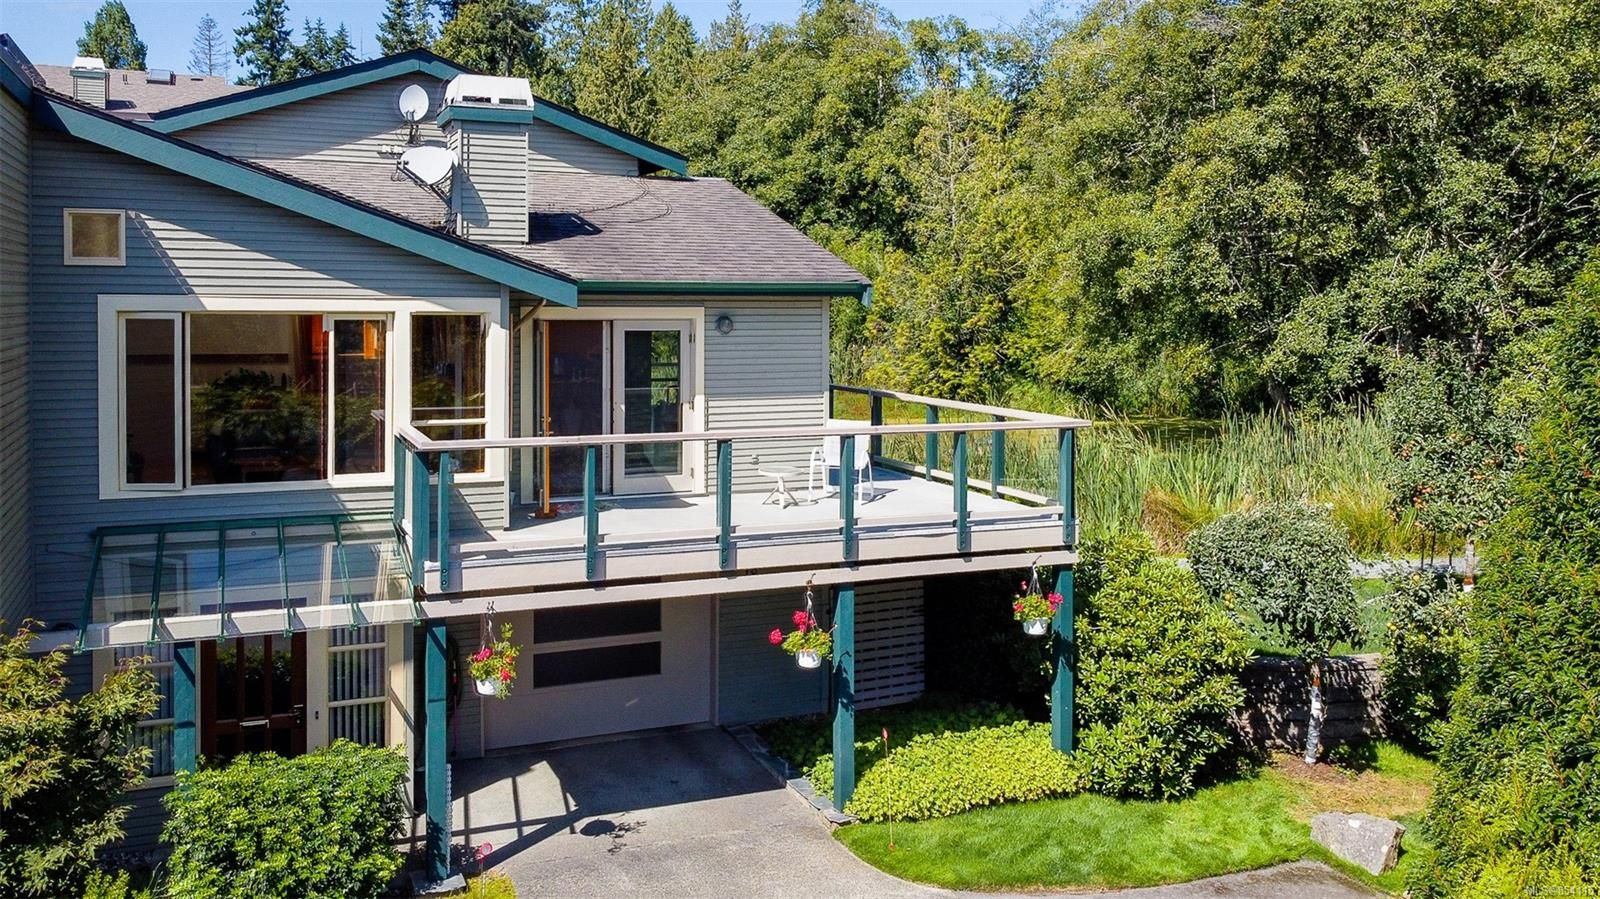 Main Photo: 18 133 Corbett Rd in : GI Salt Spring Row/Townhouse for sale (Gulf Islands)  : MLS®# 854115